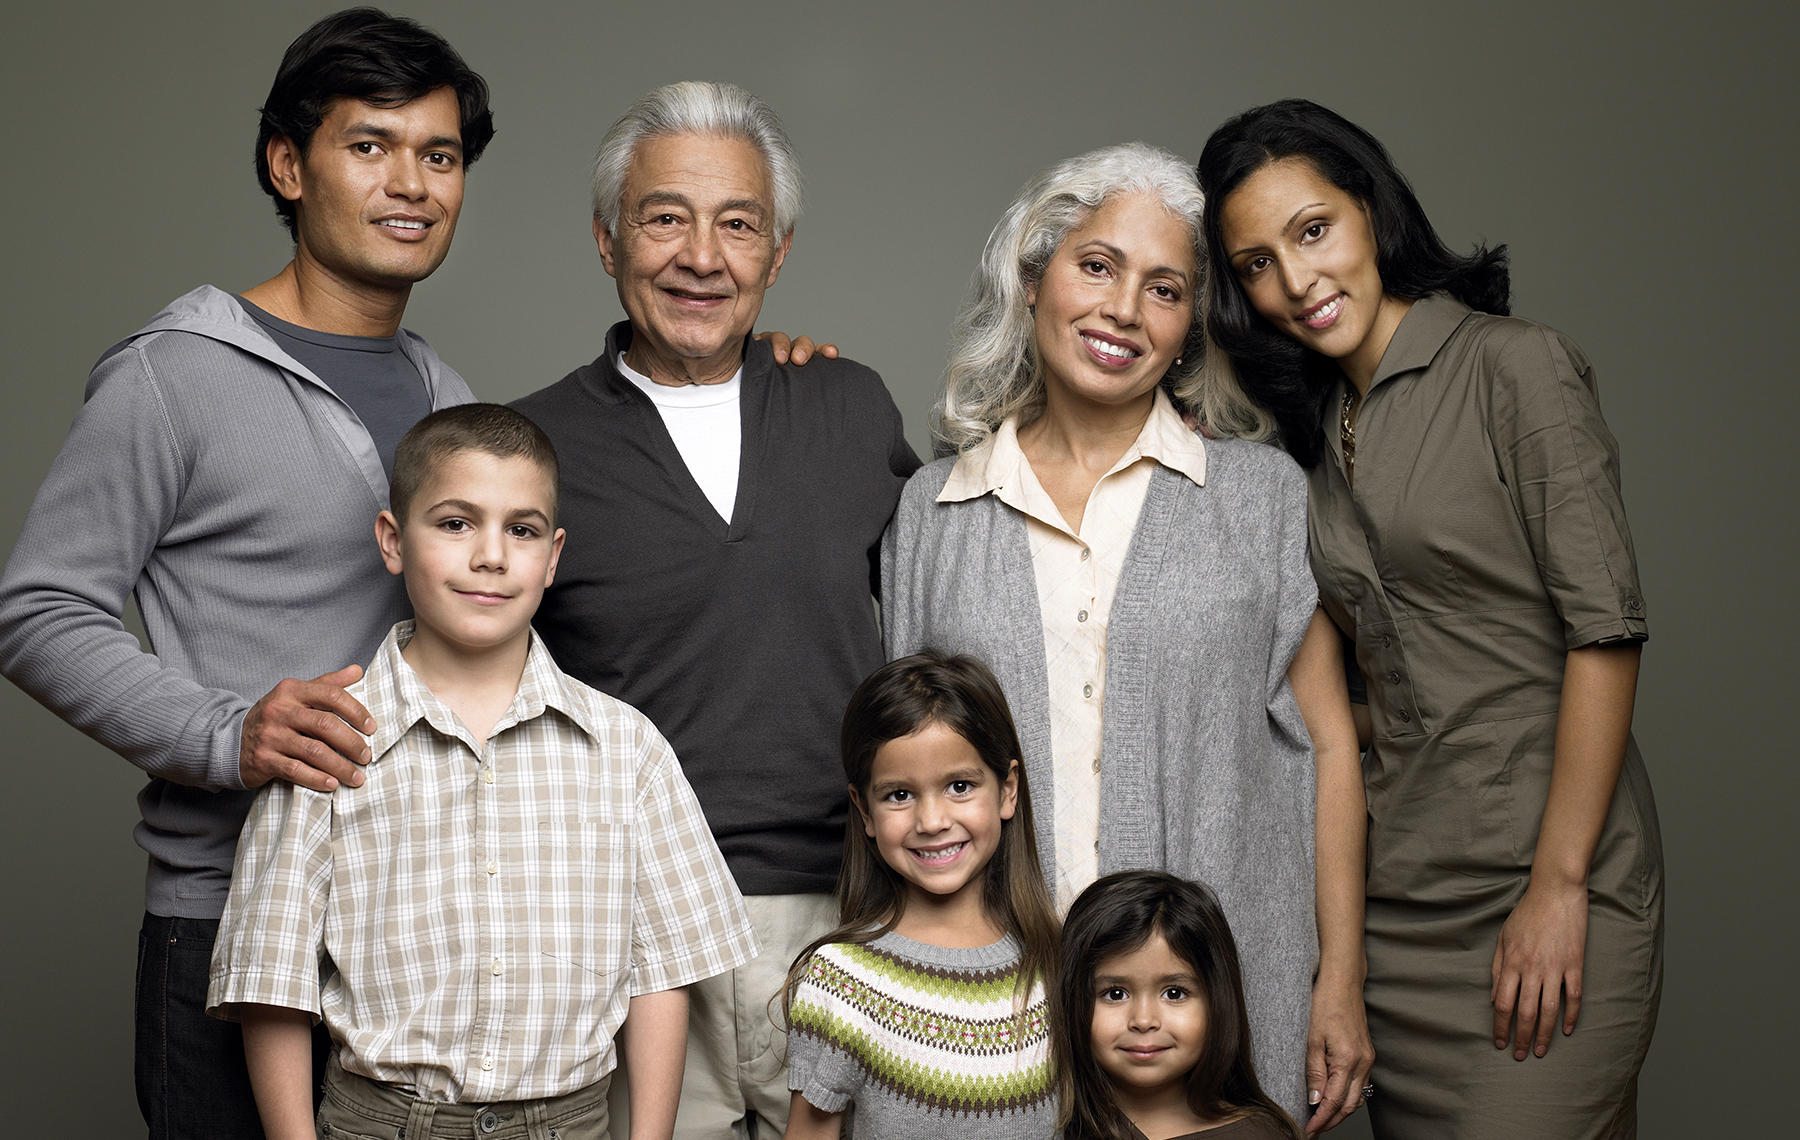 AltaMed Latino family in group shot smiling